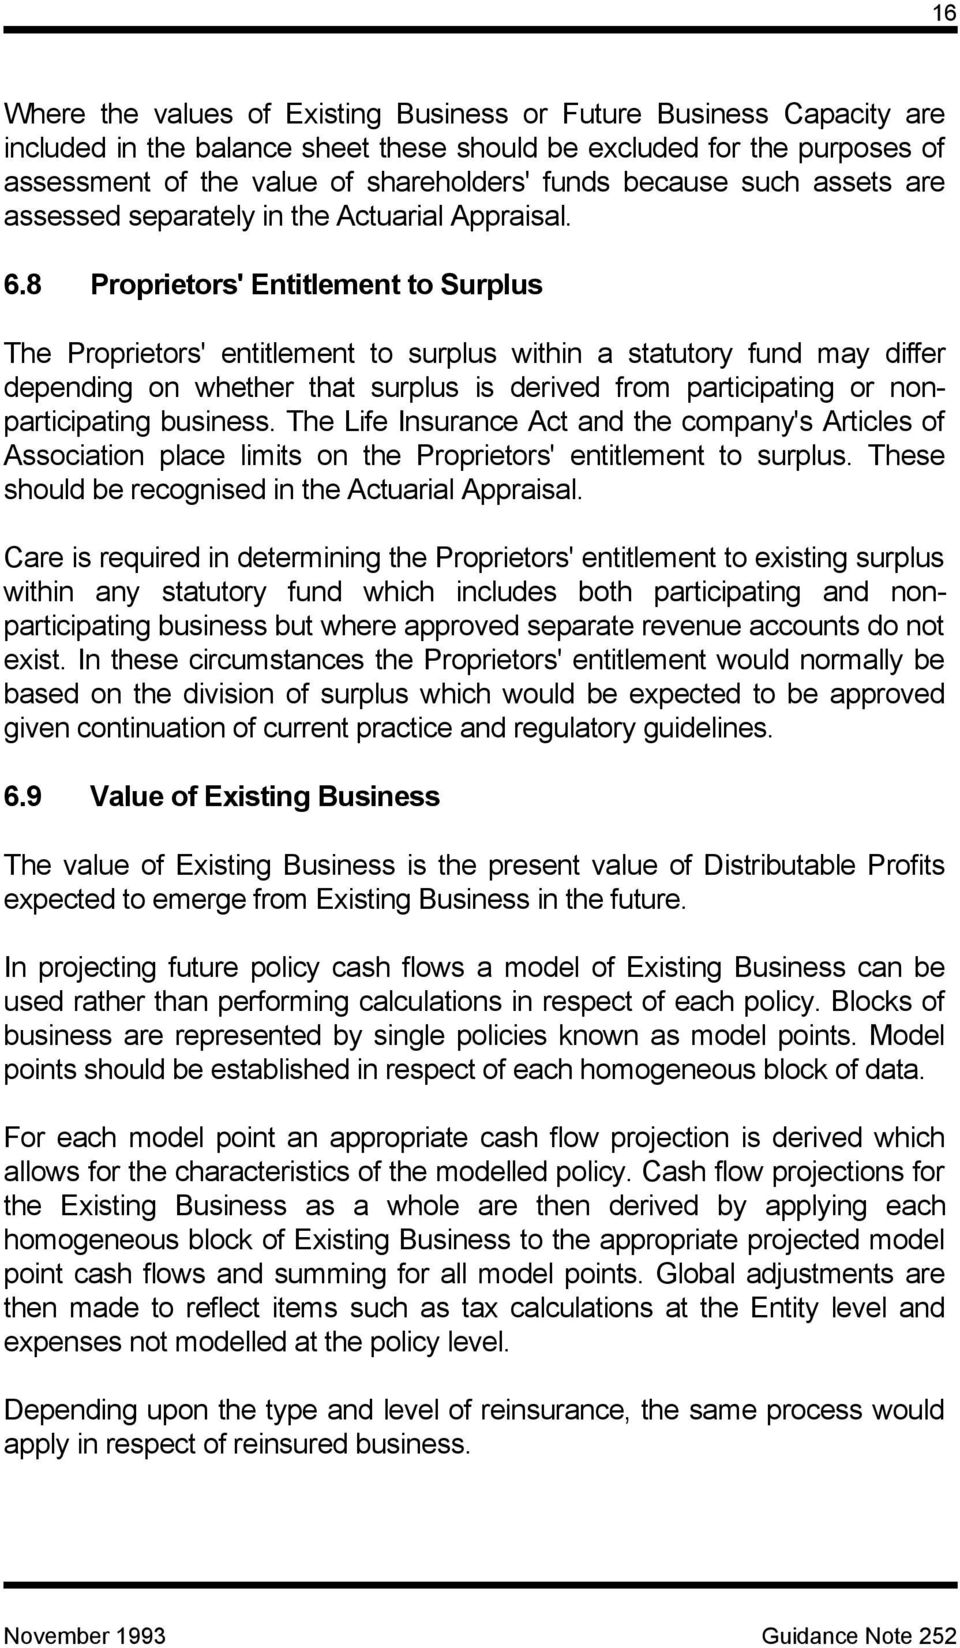 8 Proprietors' Entitlement to Surplus The Proprietors' entitlement to surplus within a statutory fund may differ depending on whether that surplus is derived from participating or nonparticipating